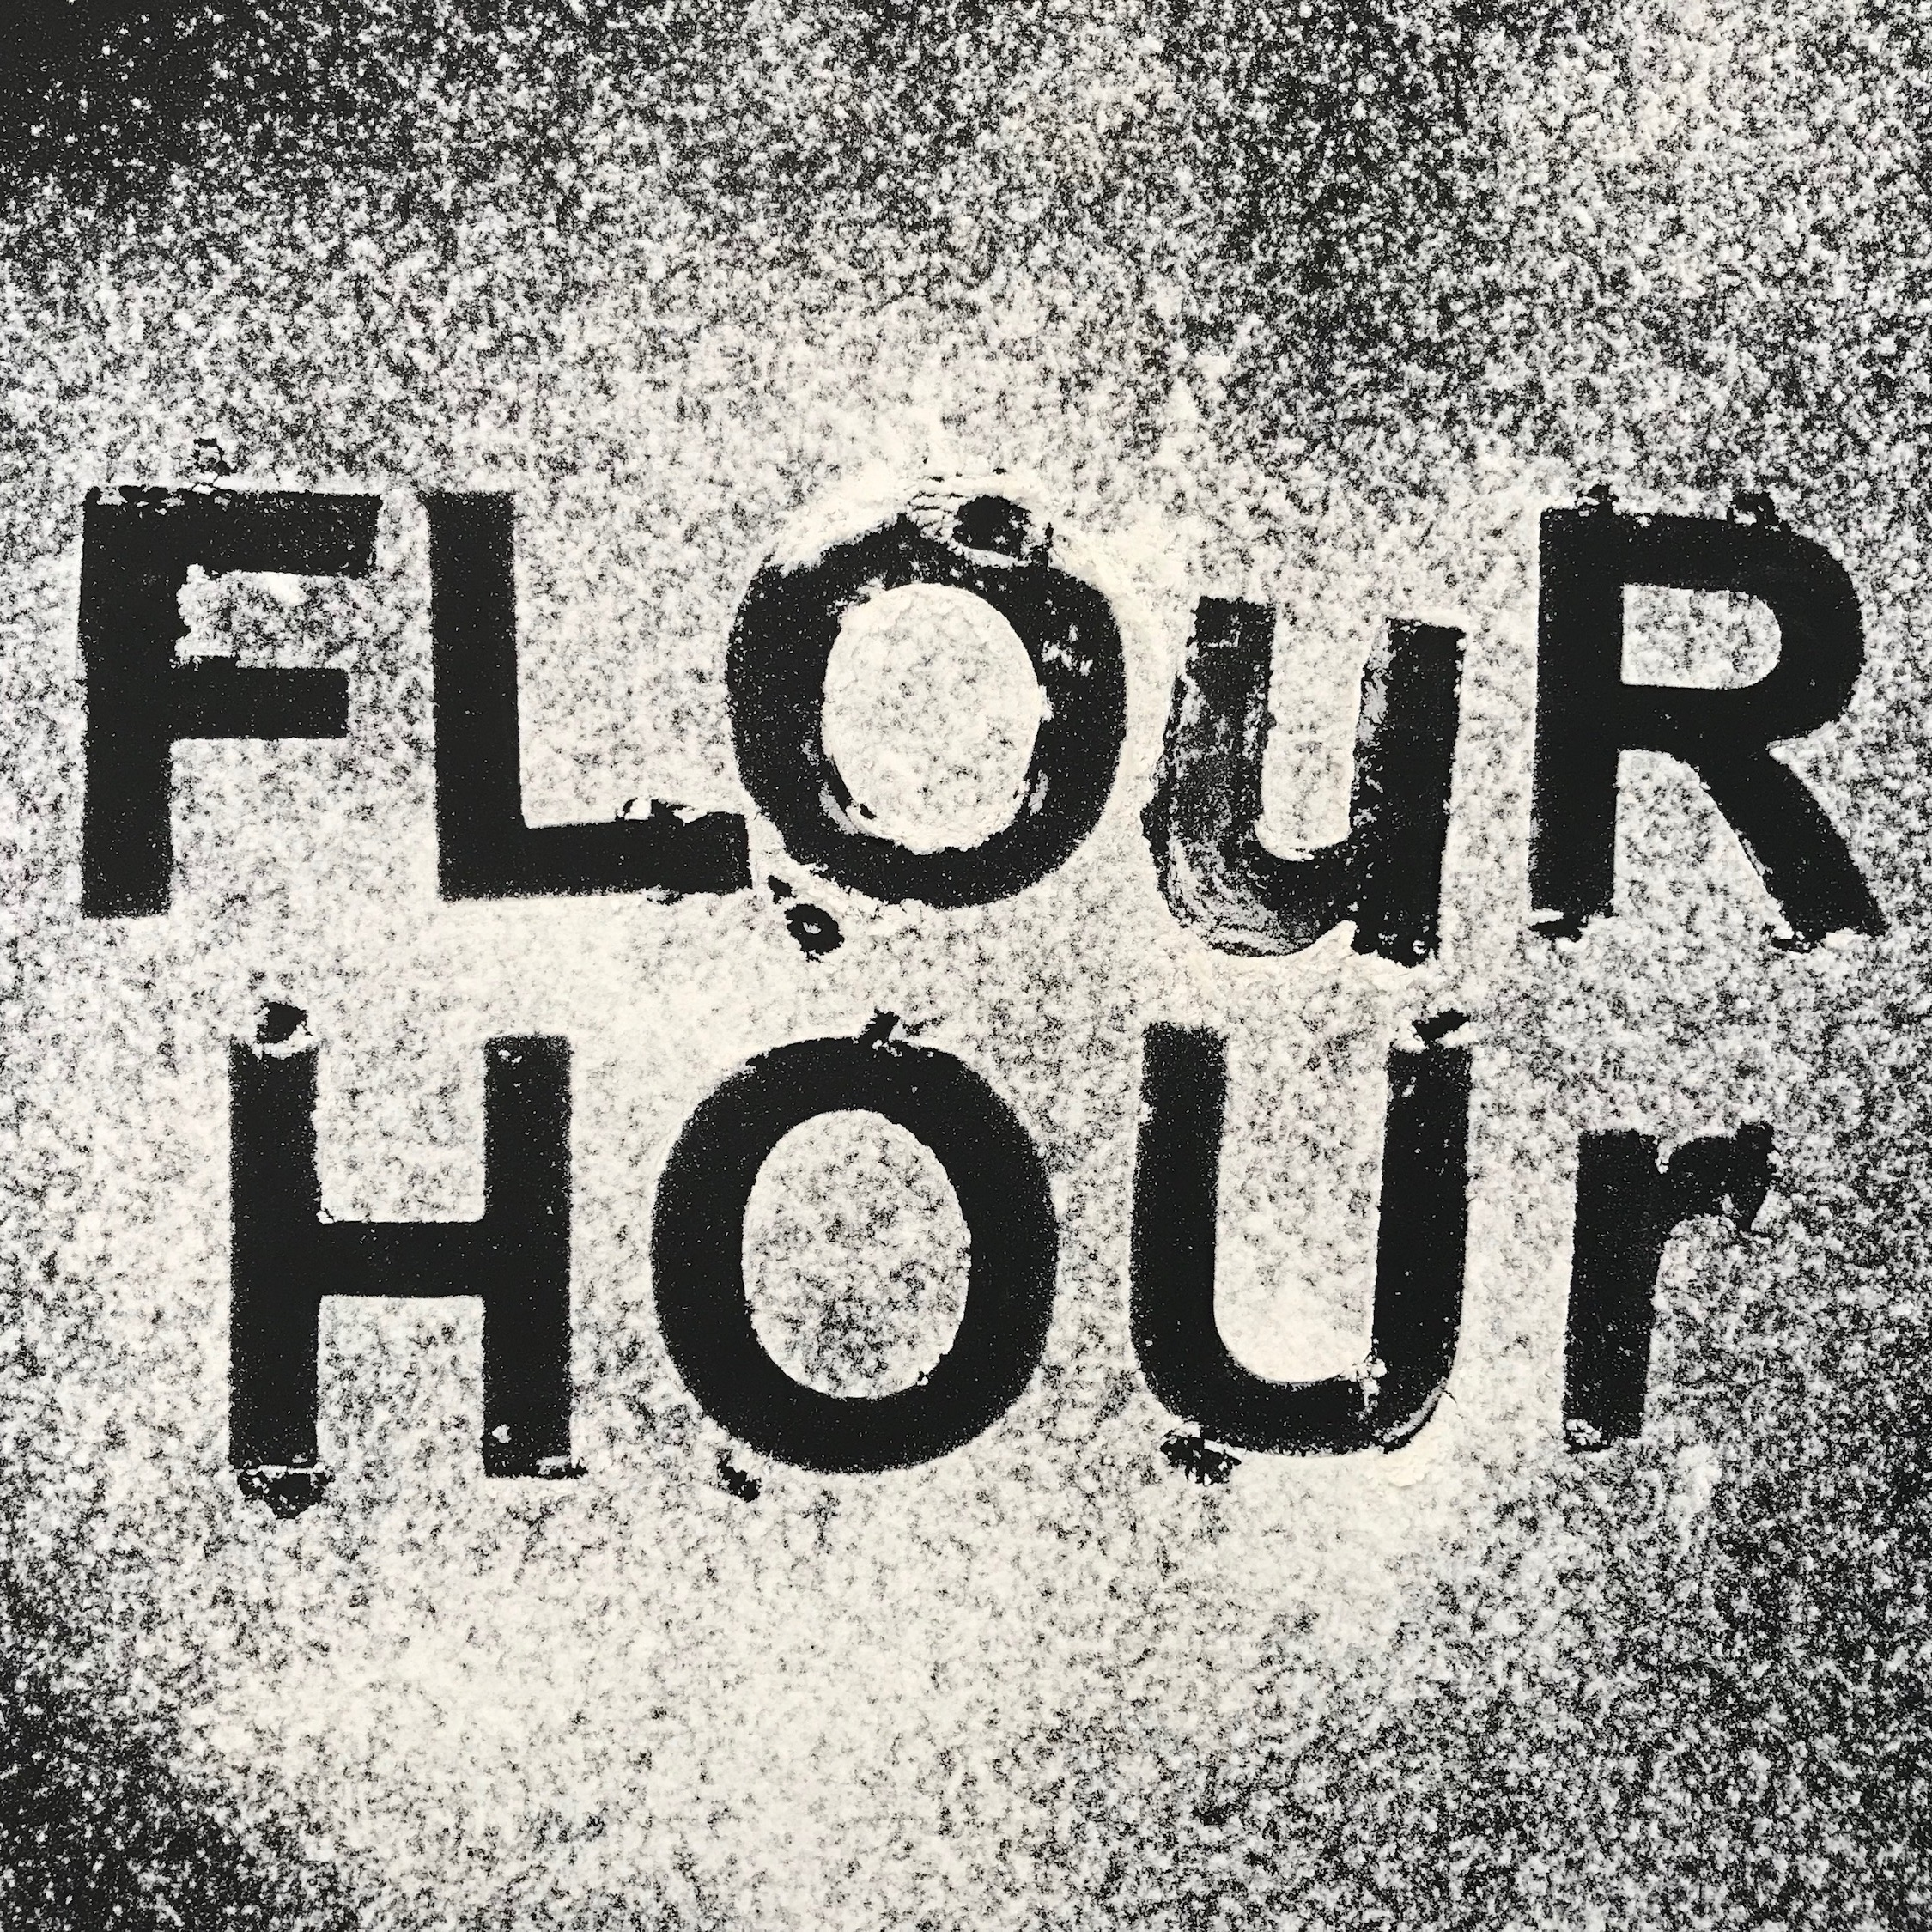 FLOUR HOUR Episode 48 the Ice Cream Episode with Jeni Britton Bauer of Jeni's Splendid Ice Creams